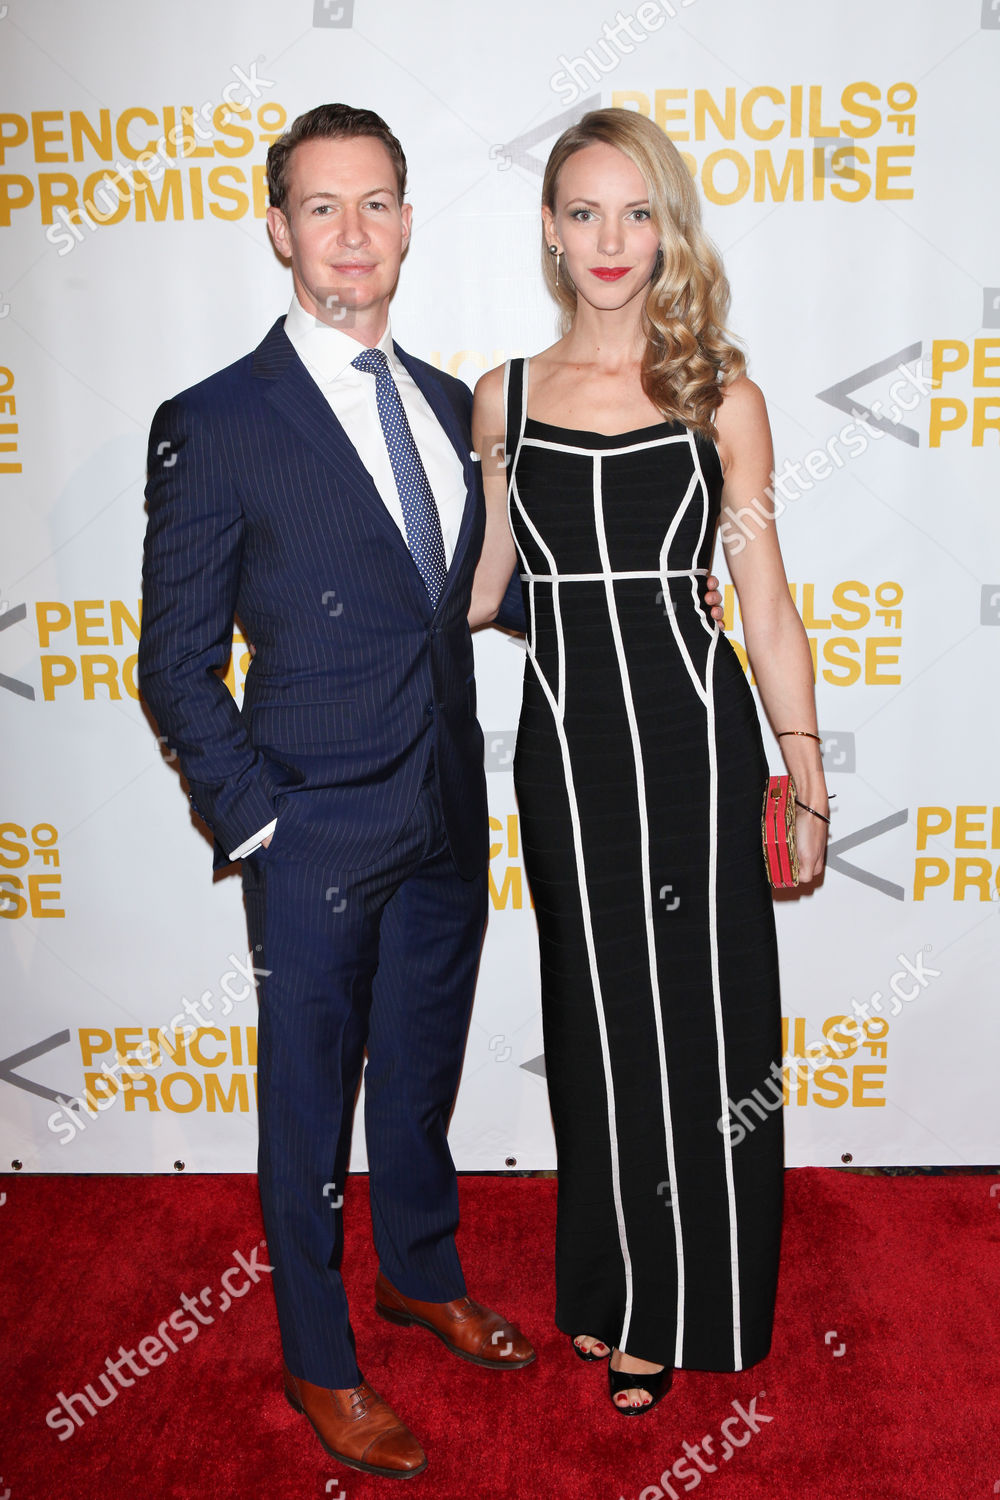 Stock photo of Pencils Of Promise Gala, New York, America - 21 Oct 2015